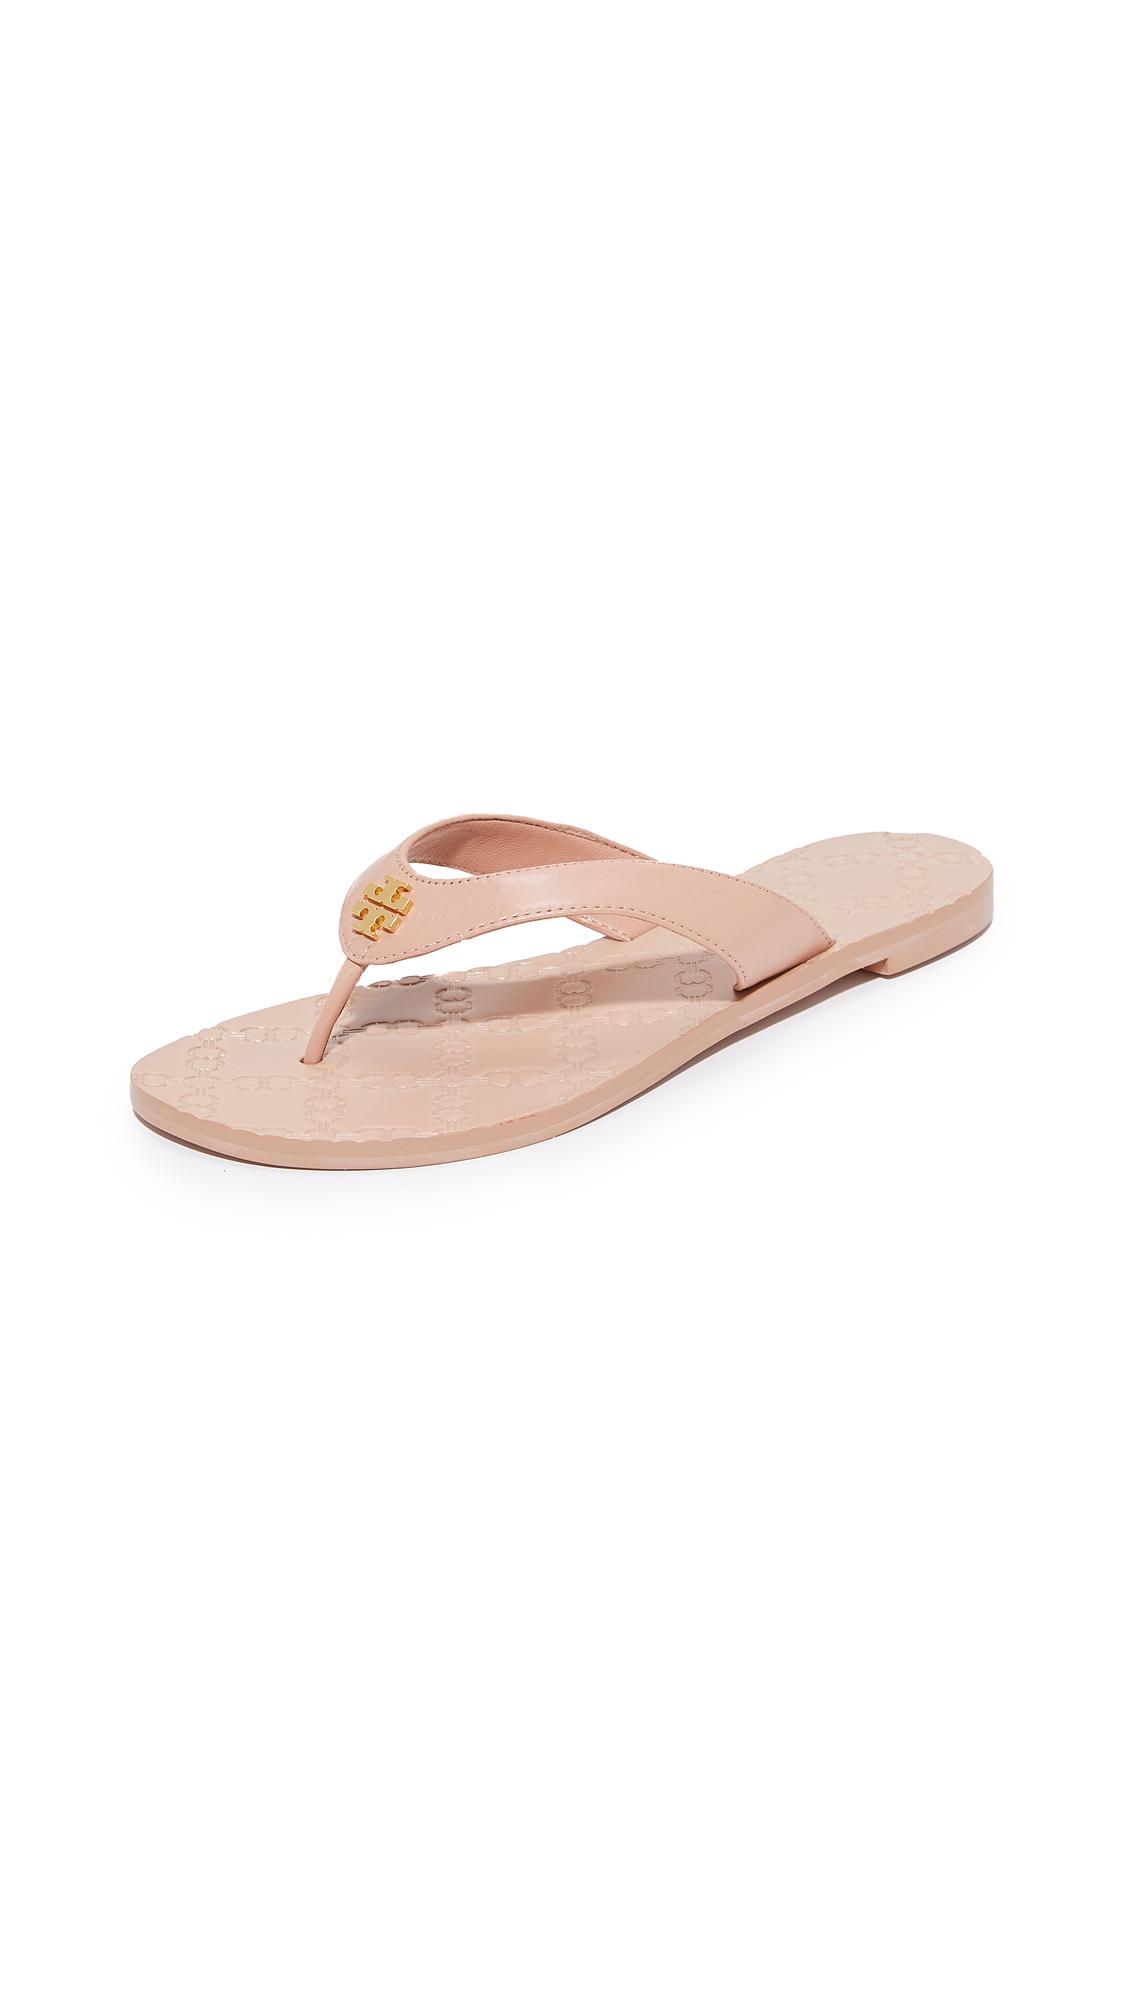 640e9ad176b Lyst - Tory Burch Monroe Thong Sandals in Pink